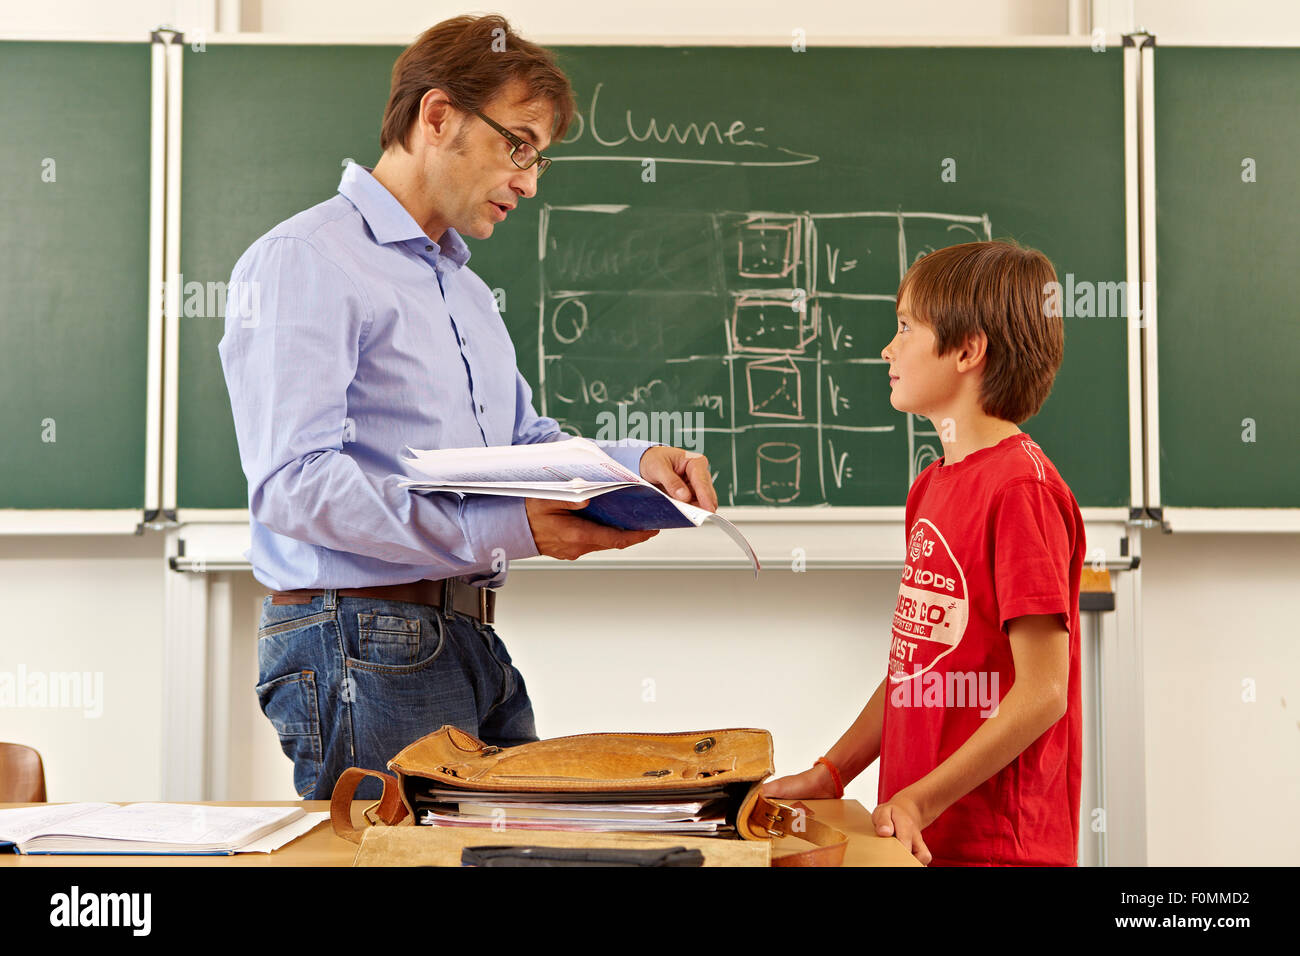 Teacher with pupil in front of blackboard - Stock Image